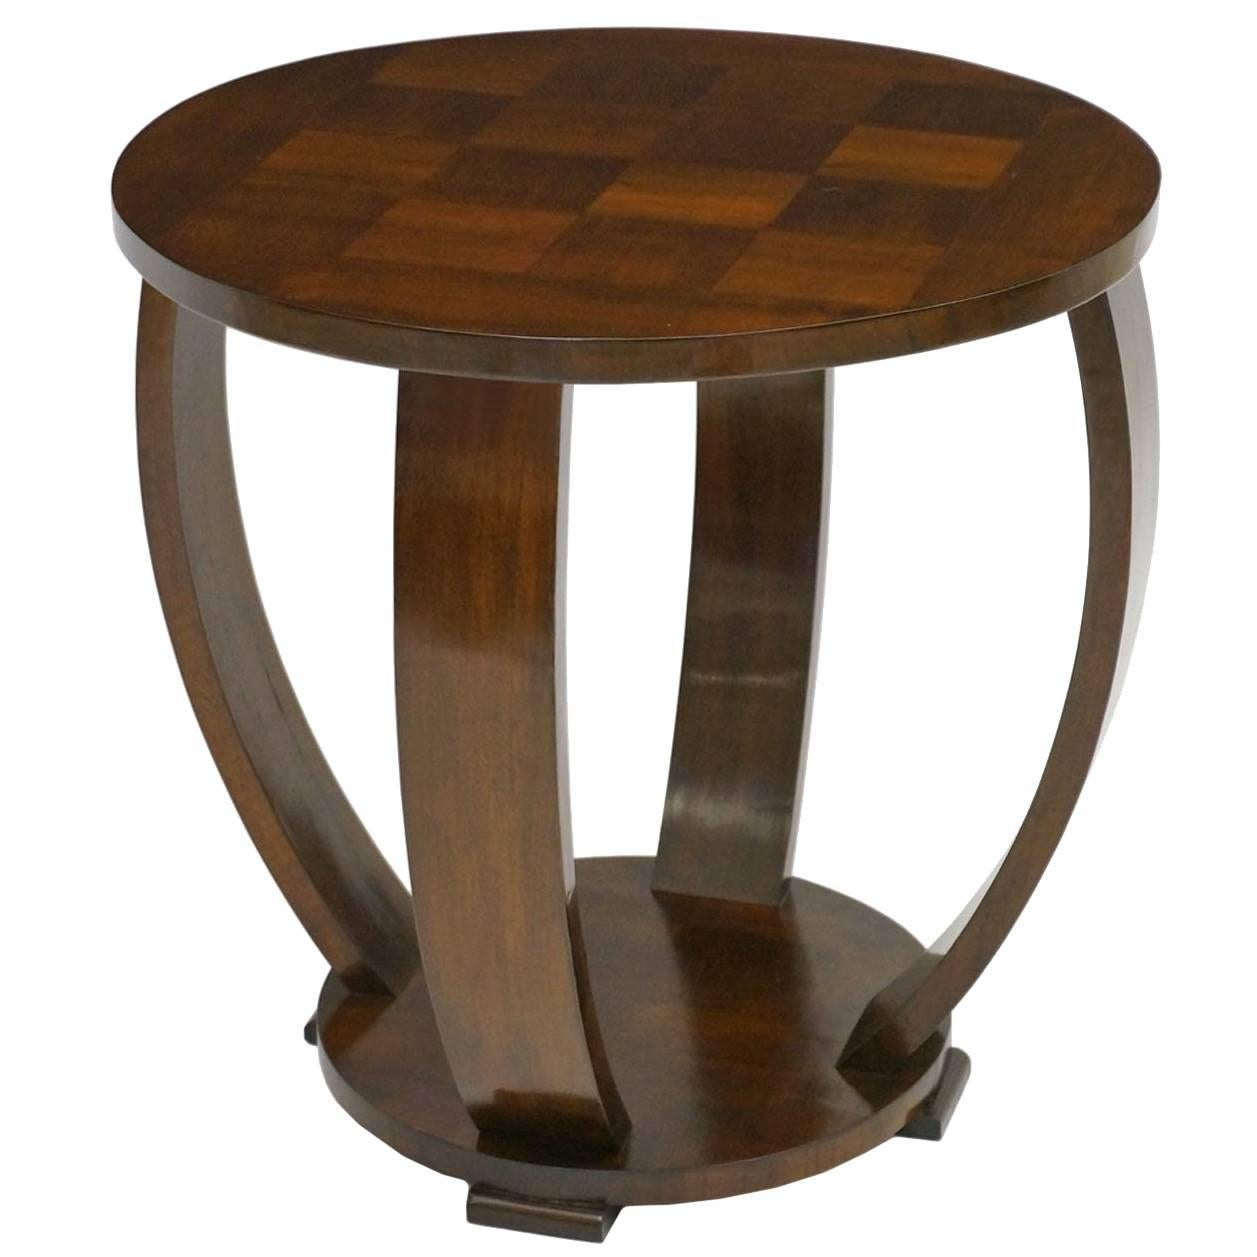 French Art Deco Circular Walnut Wood Side Table With Curved Supports, Circa  1930 1